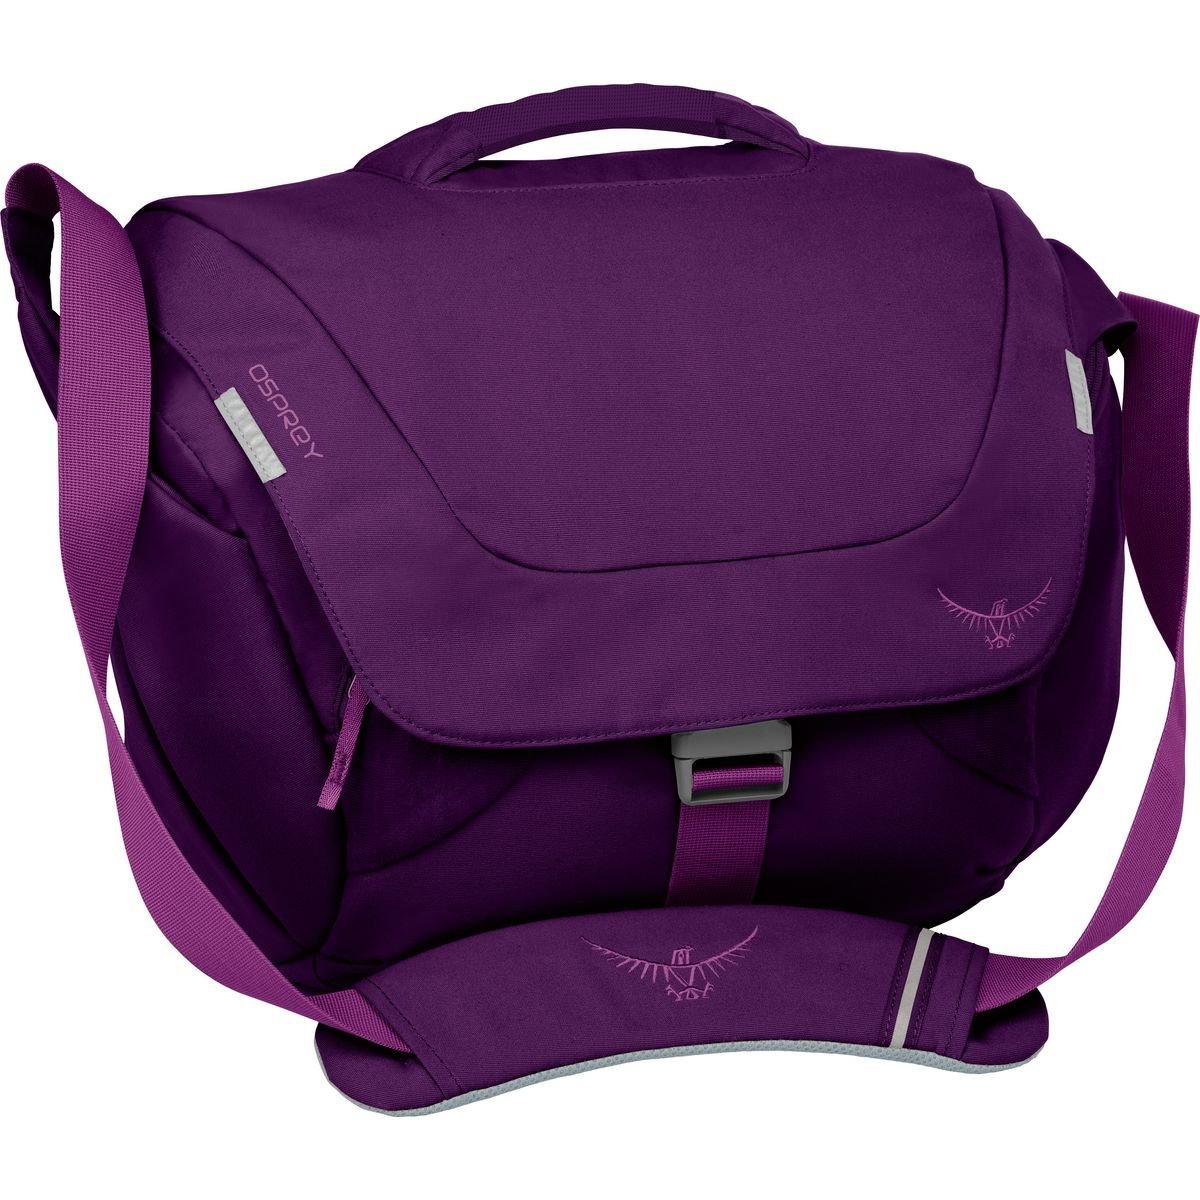 Osprey Women's FlapJill Courier Day Pack, Dark Magenta